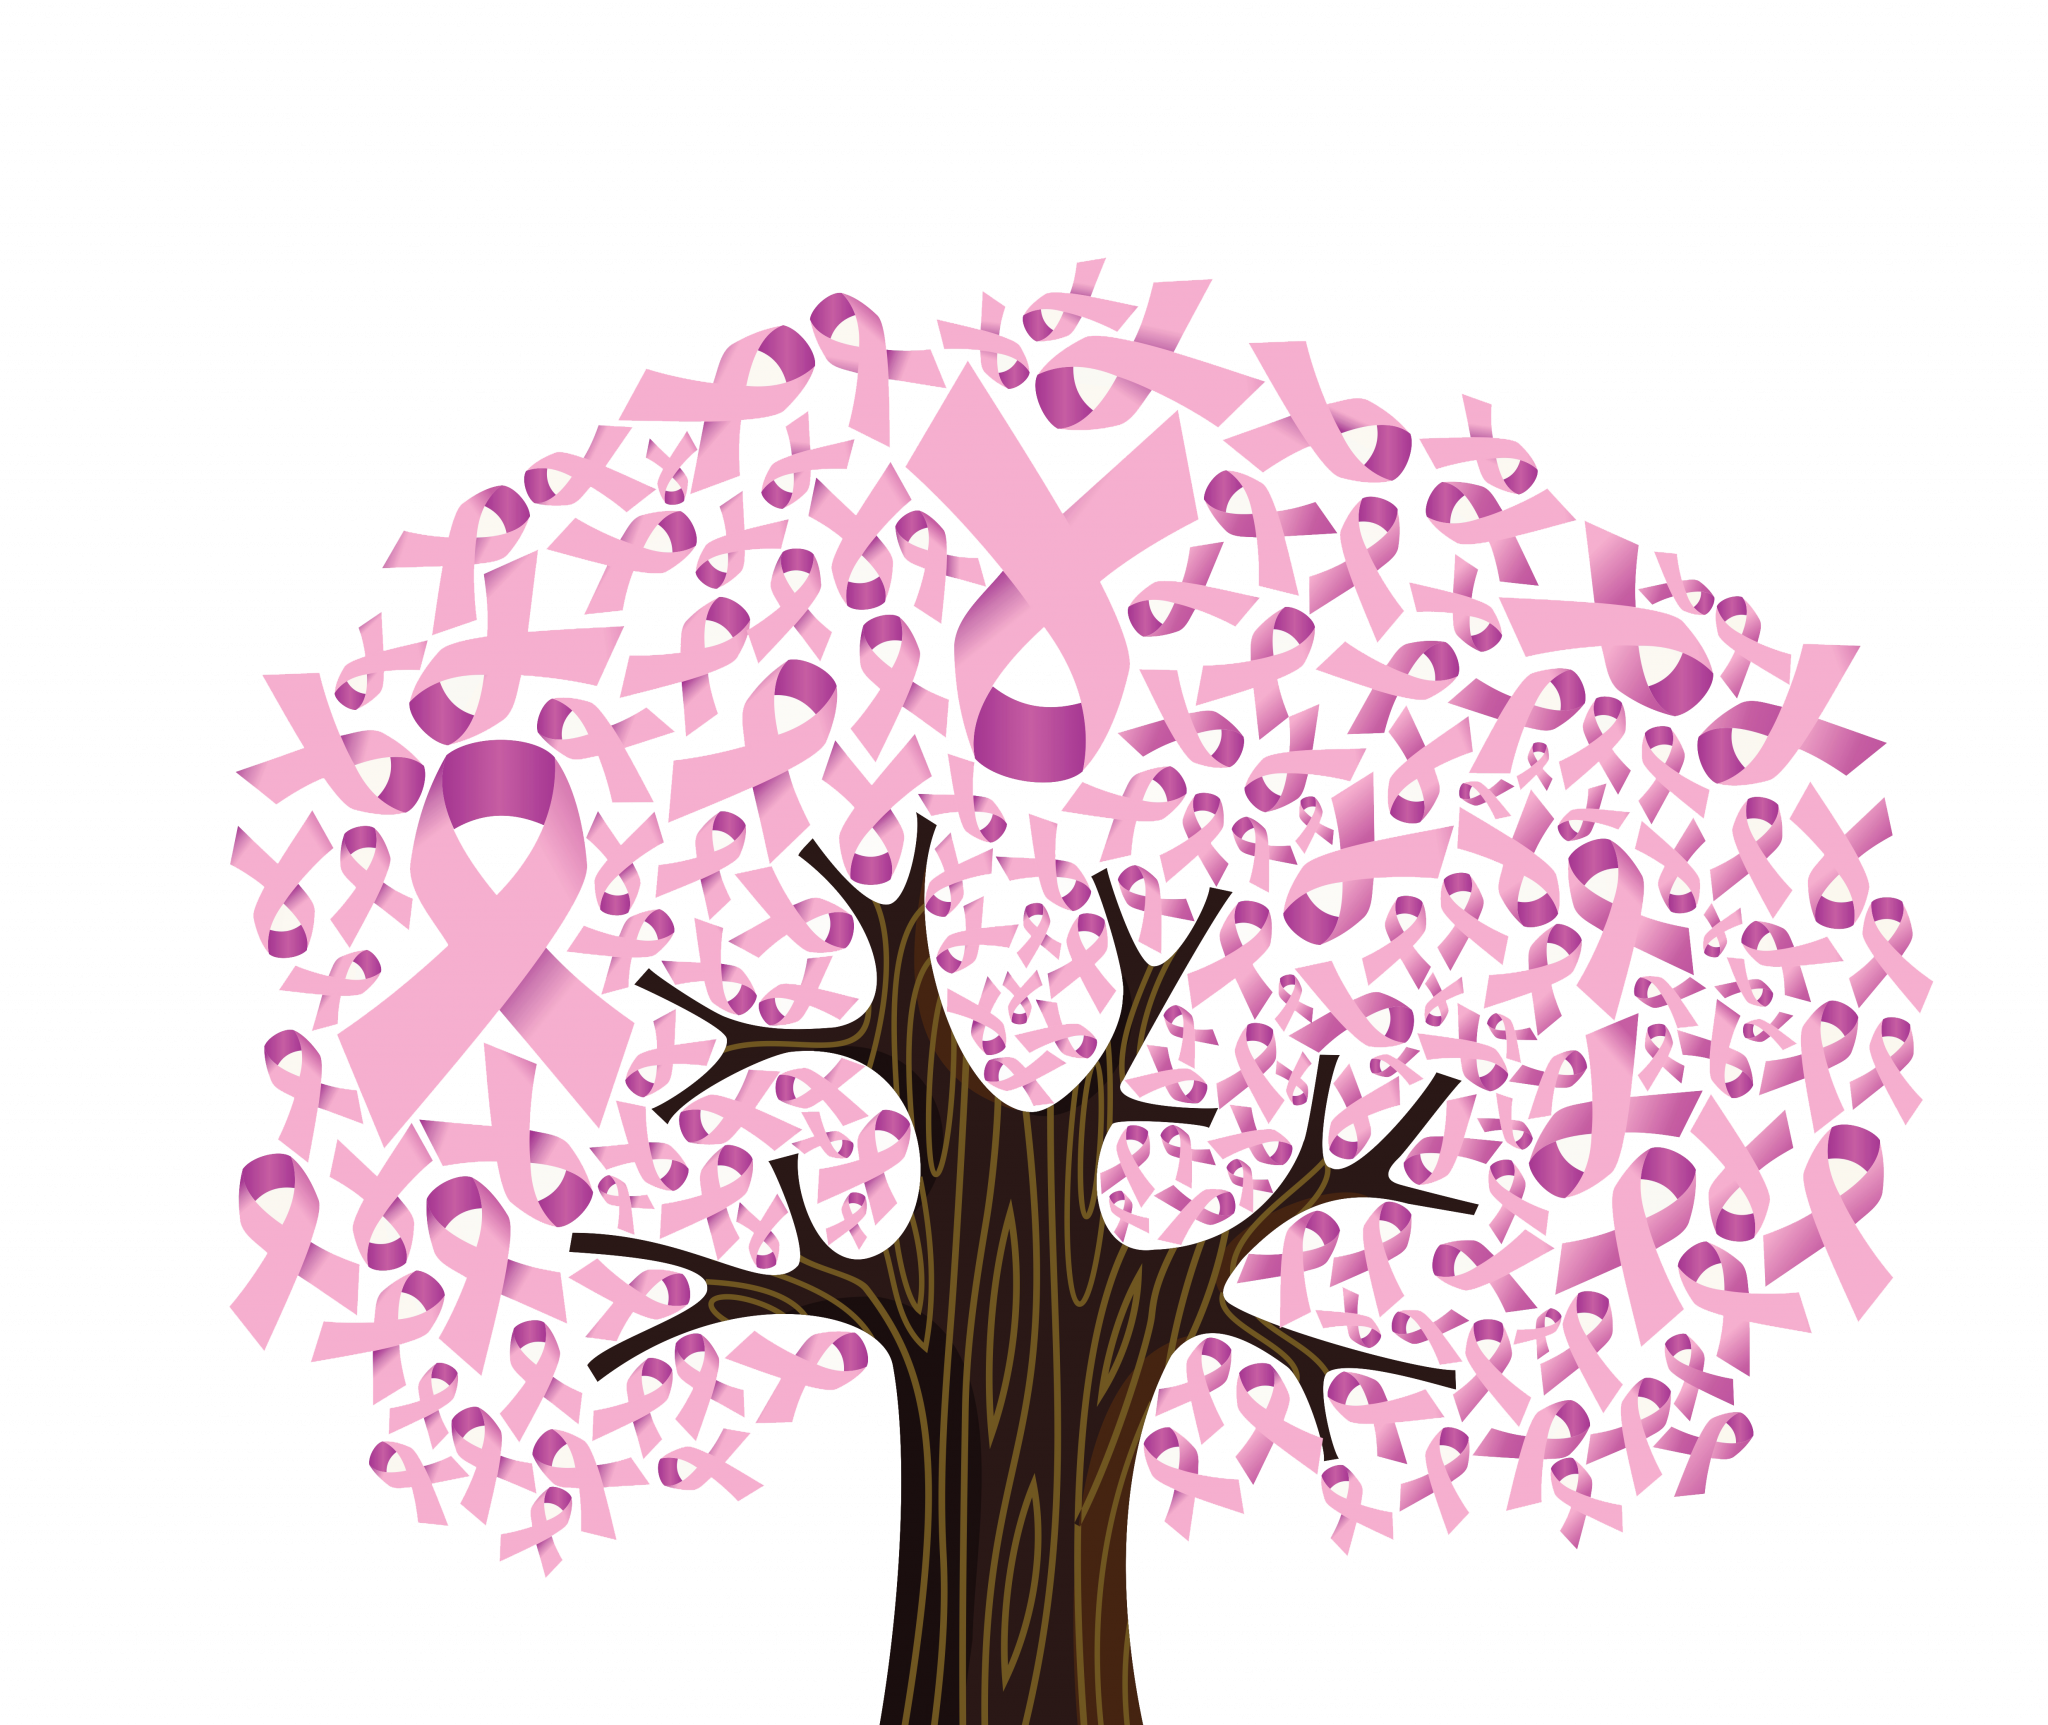 Download Breast Cancer Png Breast Cancer Awareness Tree Png Image With No Background Pngkey Com